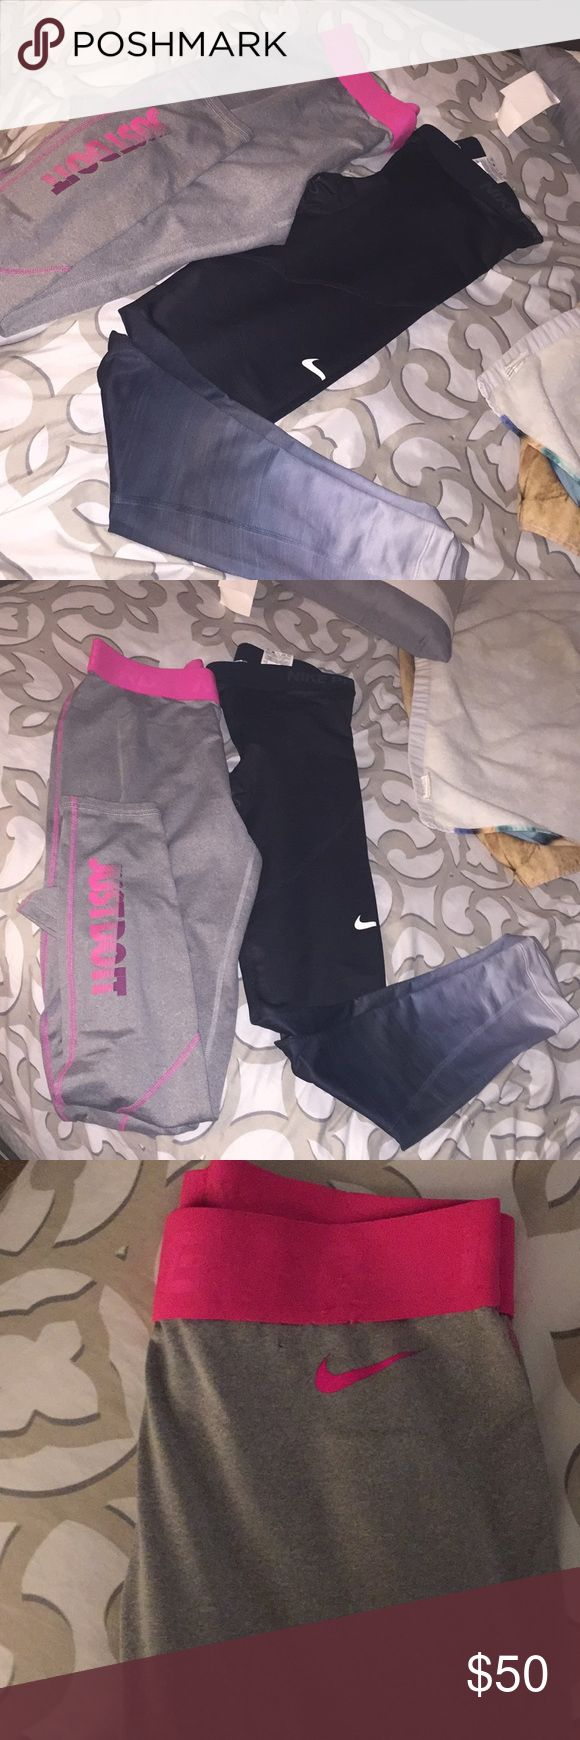 2 nikes pro pants Two Nike workout pants! The dark one never wore. New without tags. Great for working out! Unfortunately don't fit me. Nike Pants Leggings